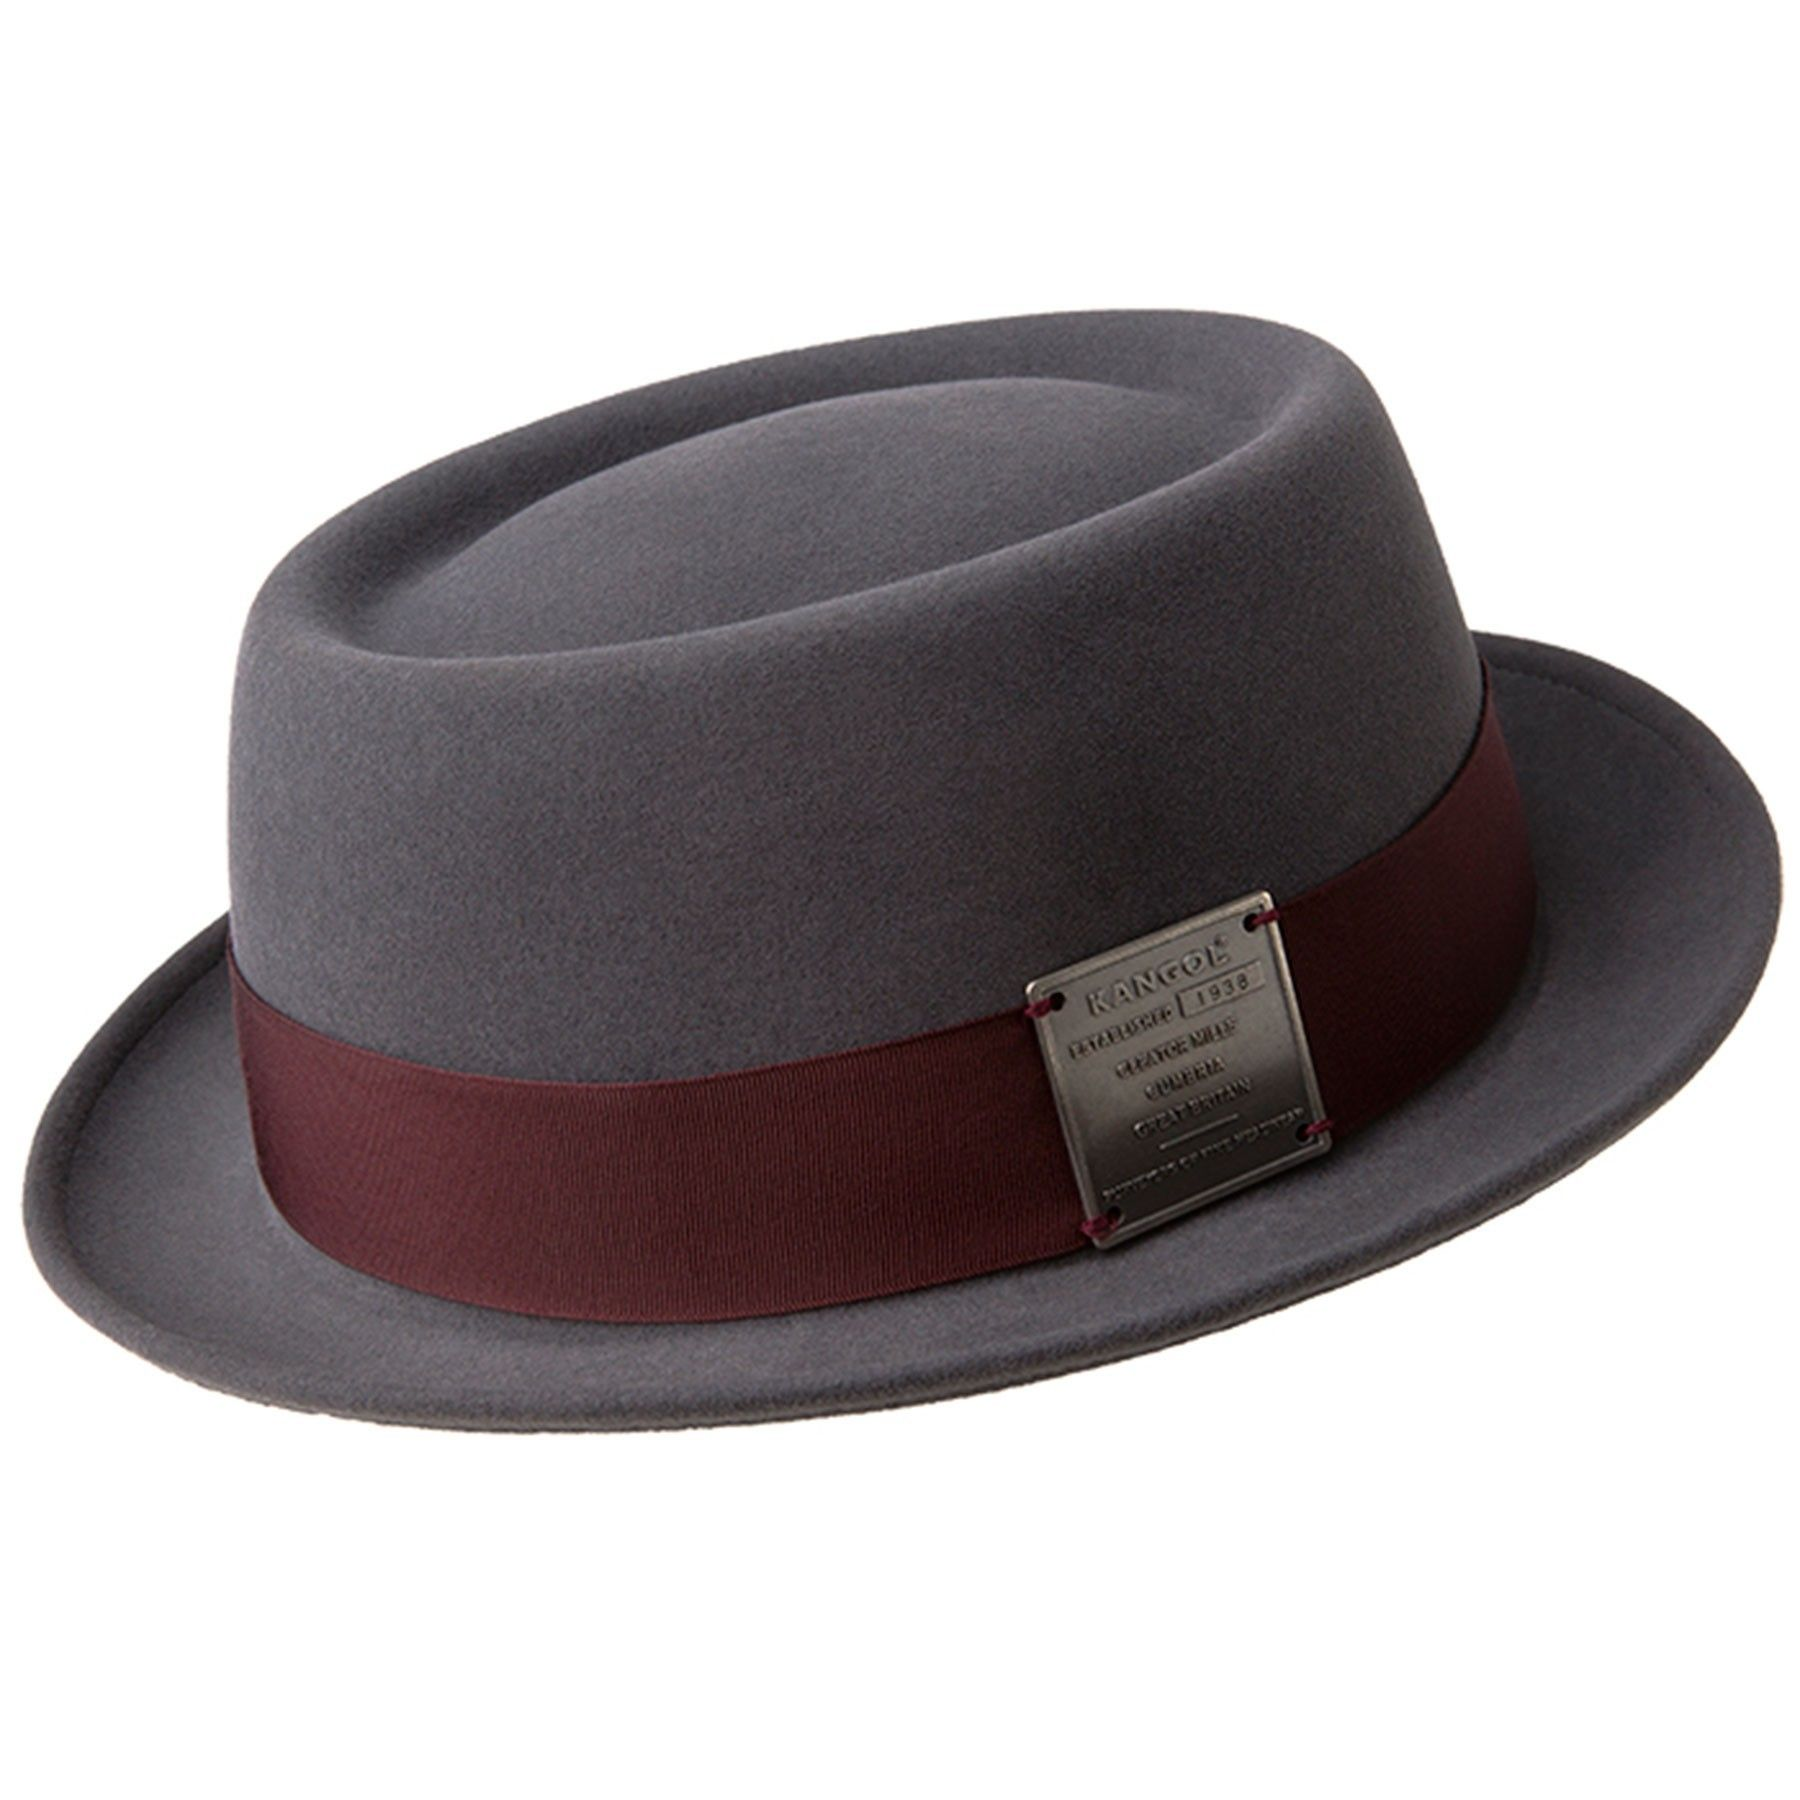 c04b813ed436dc Kangol Cranston - Linotype Pork Pie Hat | Hats in 2019 | Hats, Pork ...